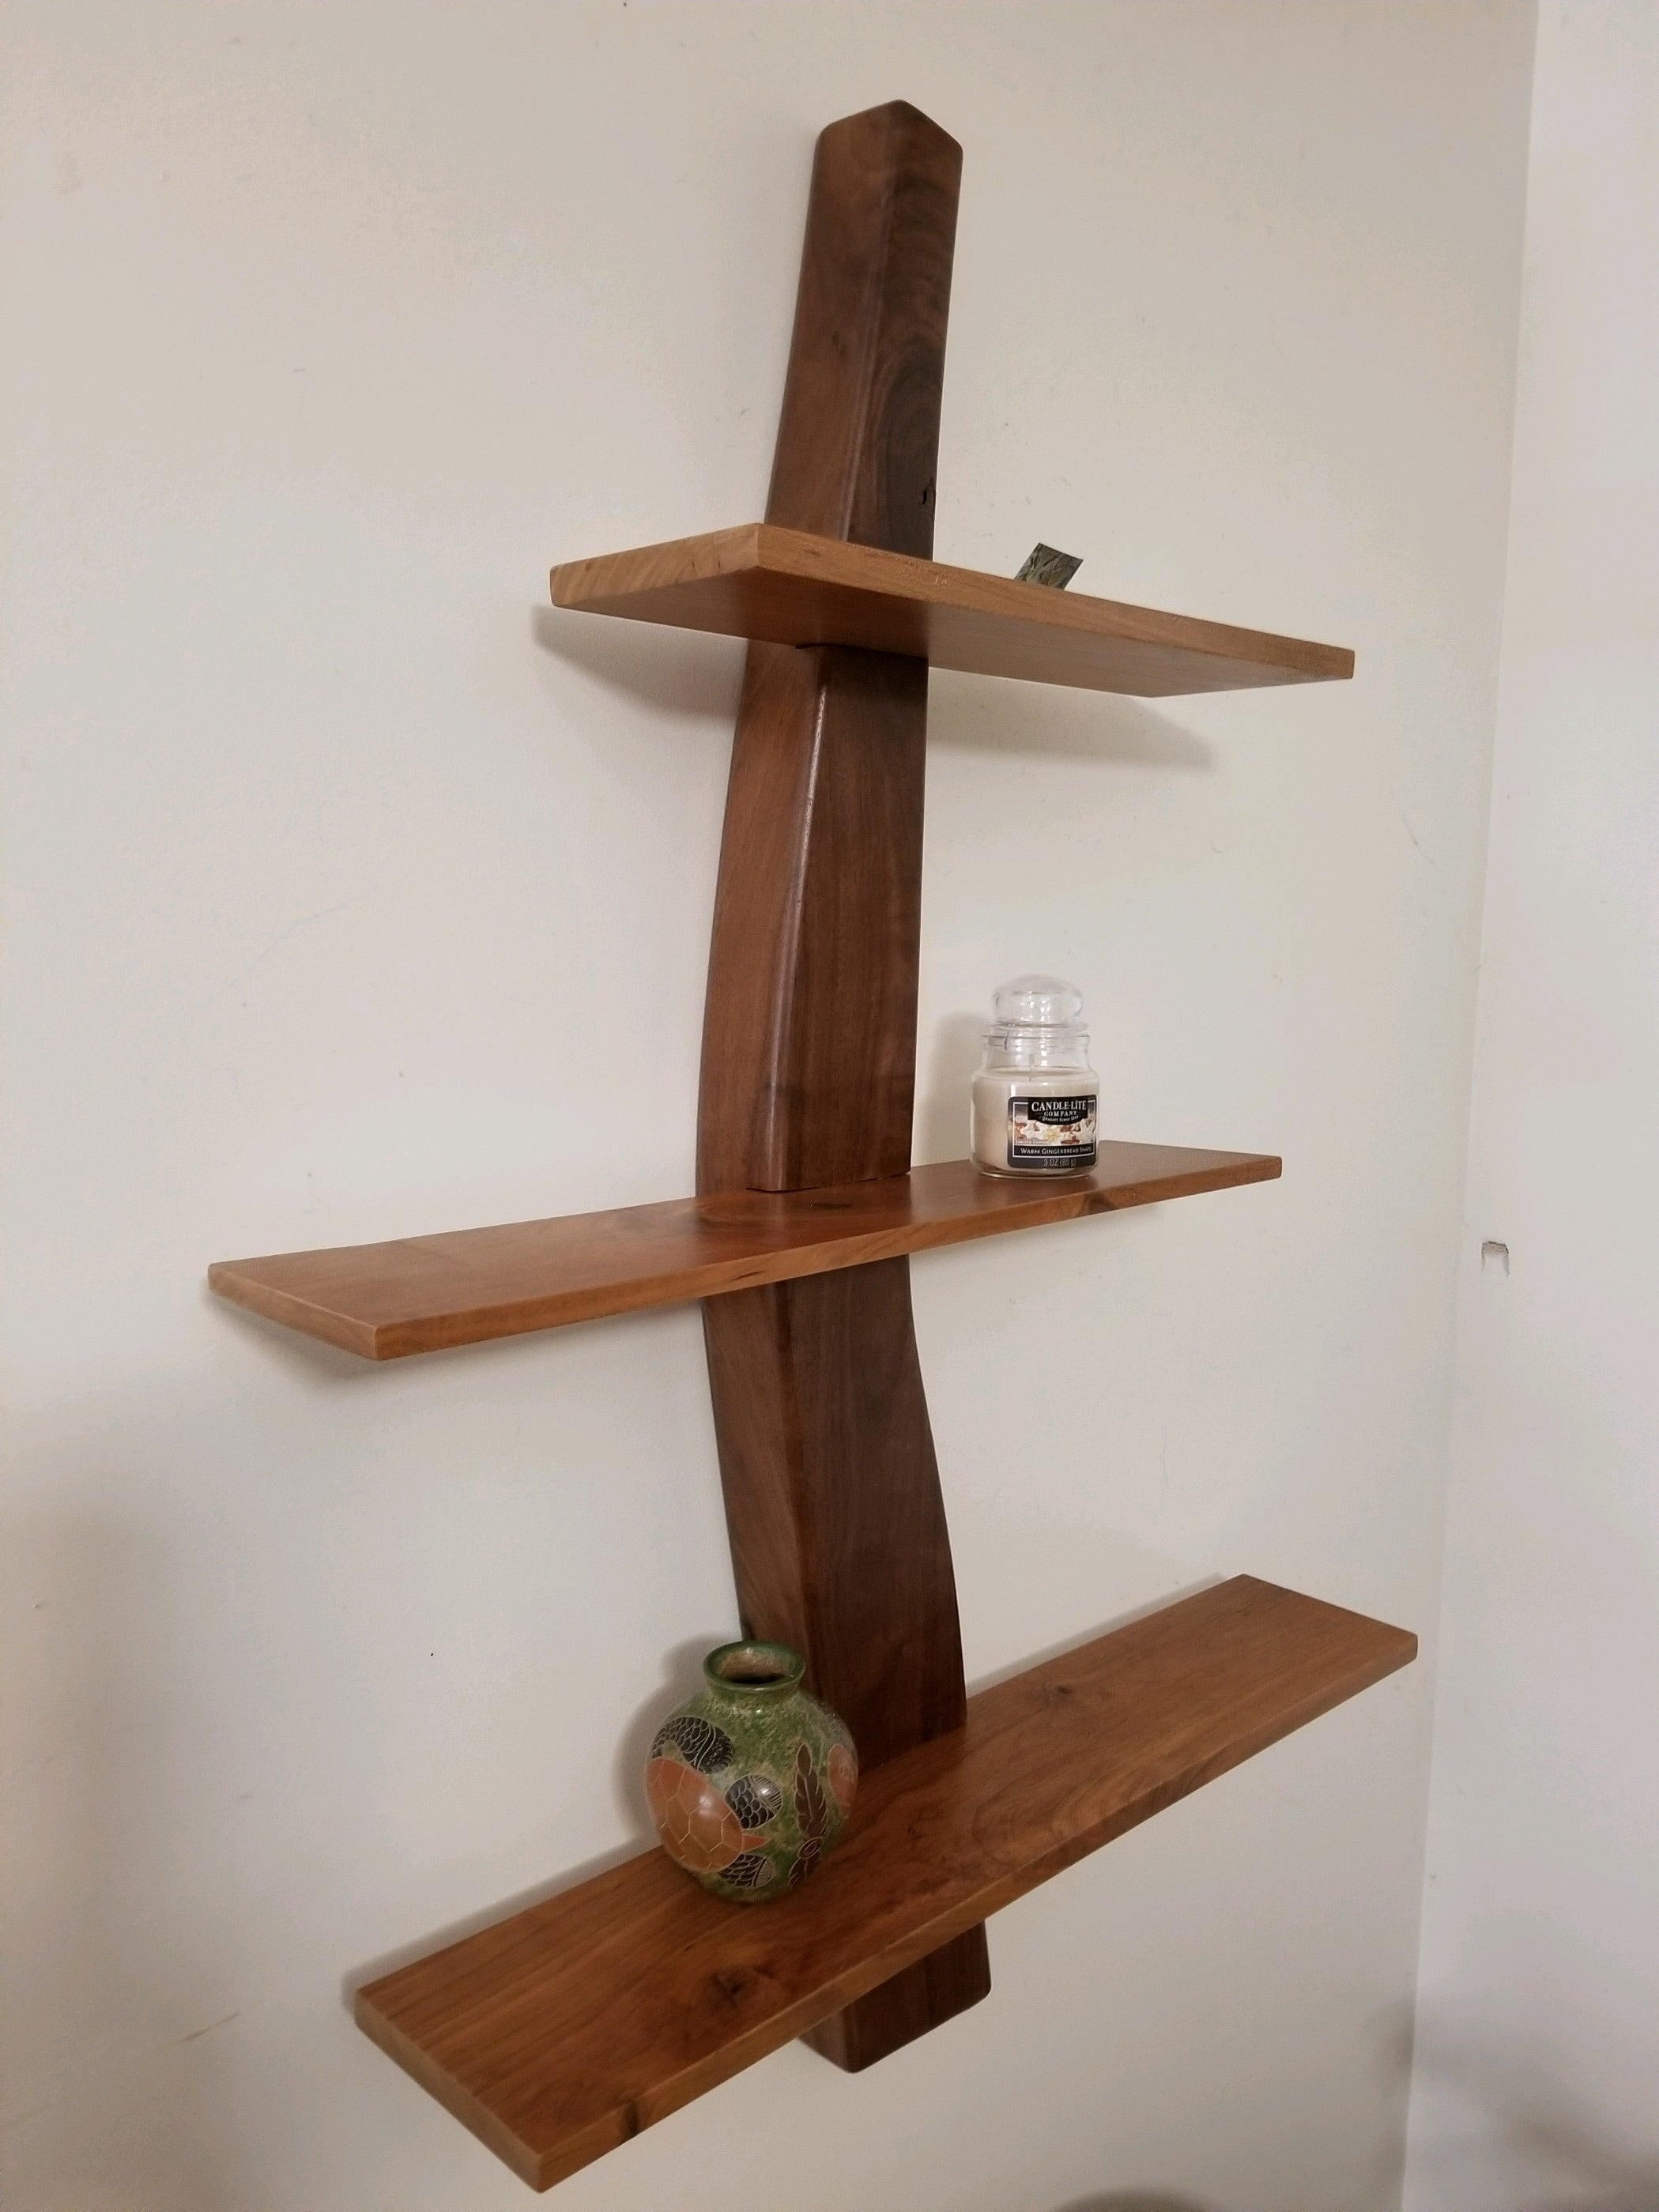 Harborwood Studio - Walnut and cherry display shelf